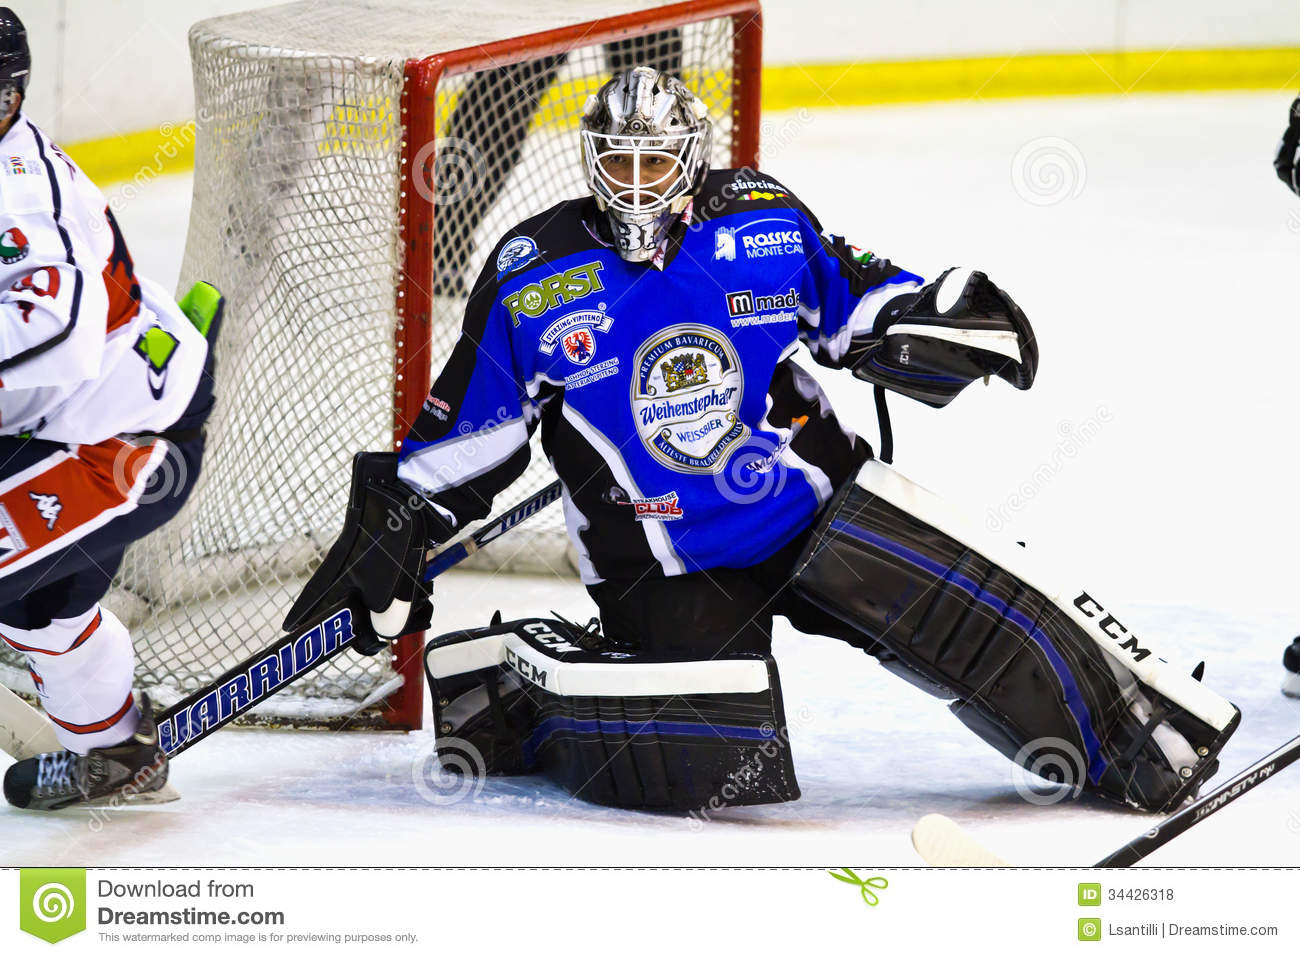 an analysis of a goaltender in ice hockey Mega programs have been designed to develop and refine a goaltender's skills in a challenging and purposeful environment the dynamic coaching staff includes multiple collegiate goalie coaches who bring a unique blend of coaching and playing experience ensuring every student receives a quality training experience.